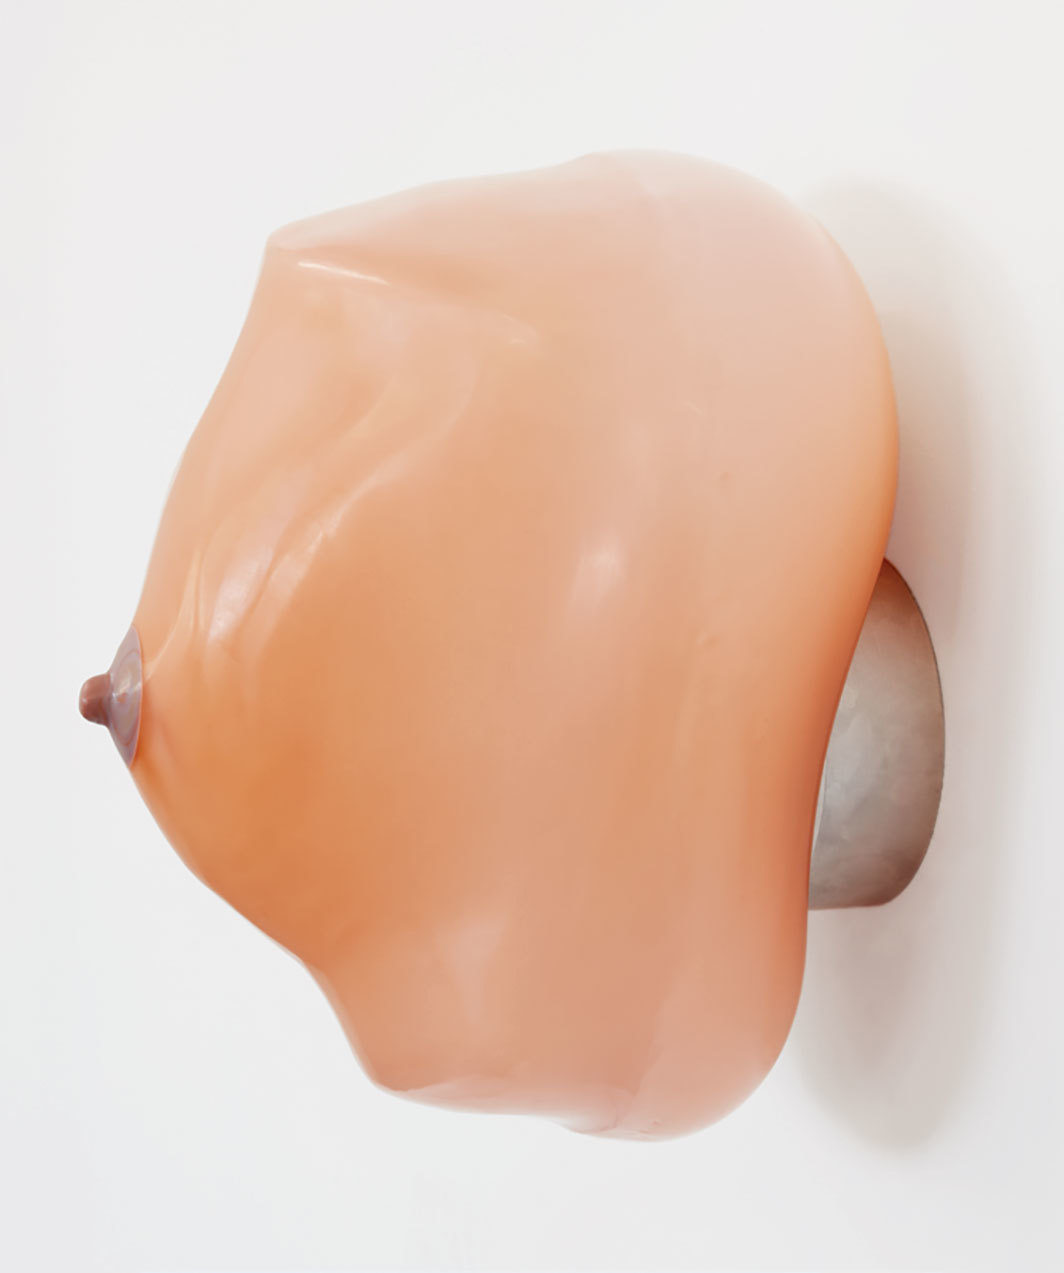 "Nevine Mahmoud, breast (Rosa Alptraum), 2019, handblown glass, resin, aluminum hardware, 10 × 7 1⁄8 × 7 1⁄2""."